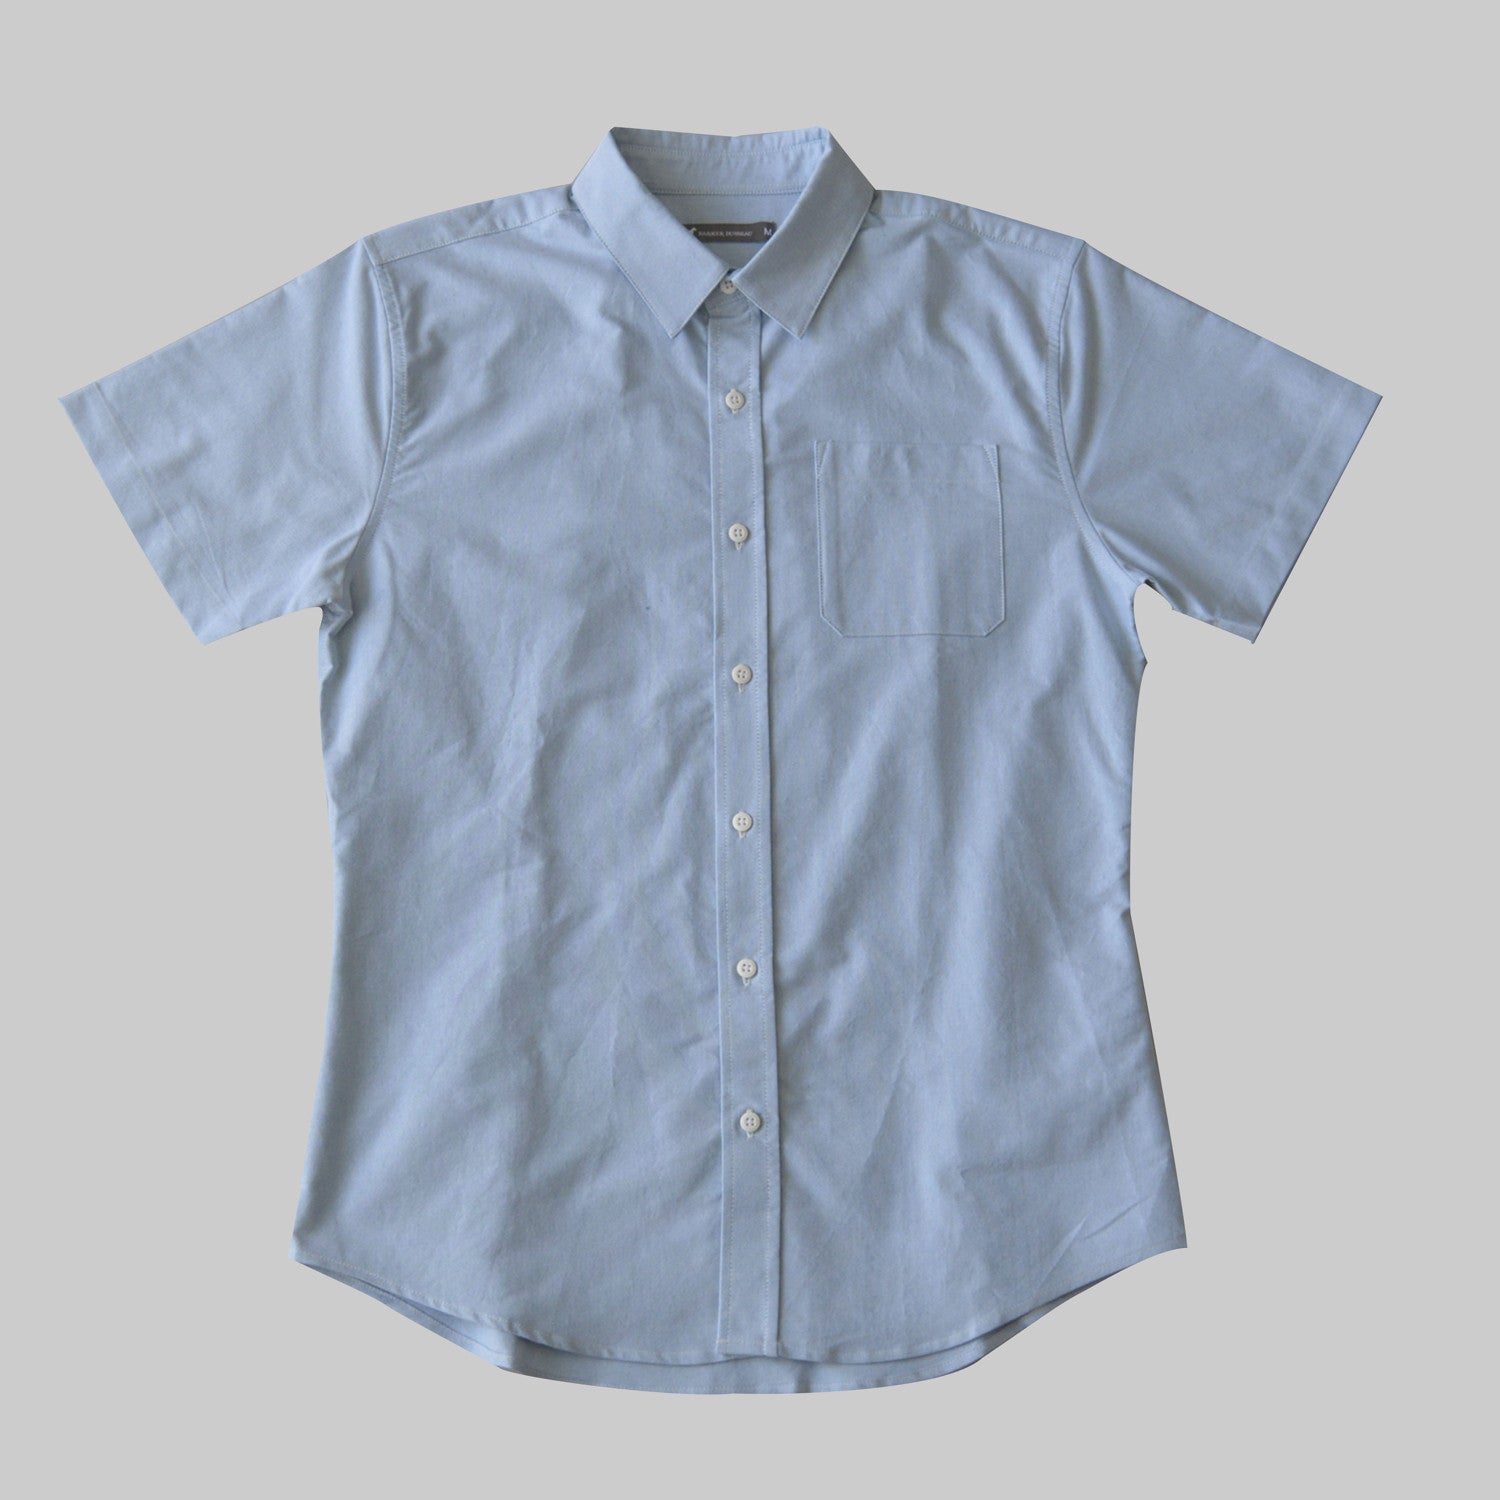 Short Sleeve Oxford Button Up - Sea Foam Dress Shirt, Short Sleeve- Parker Dusseau : Functional Menswear Essentials for the Always Ready Lifestyle. Based in San Francisco, California